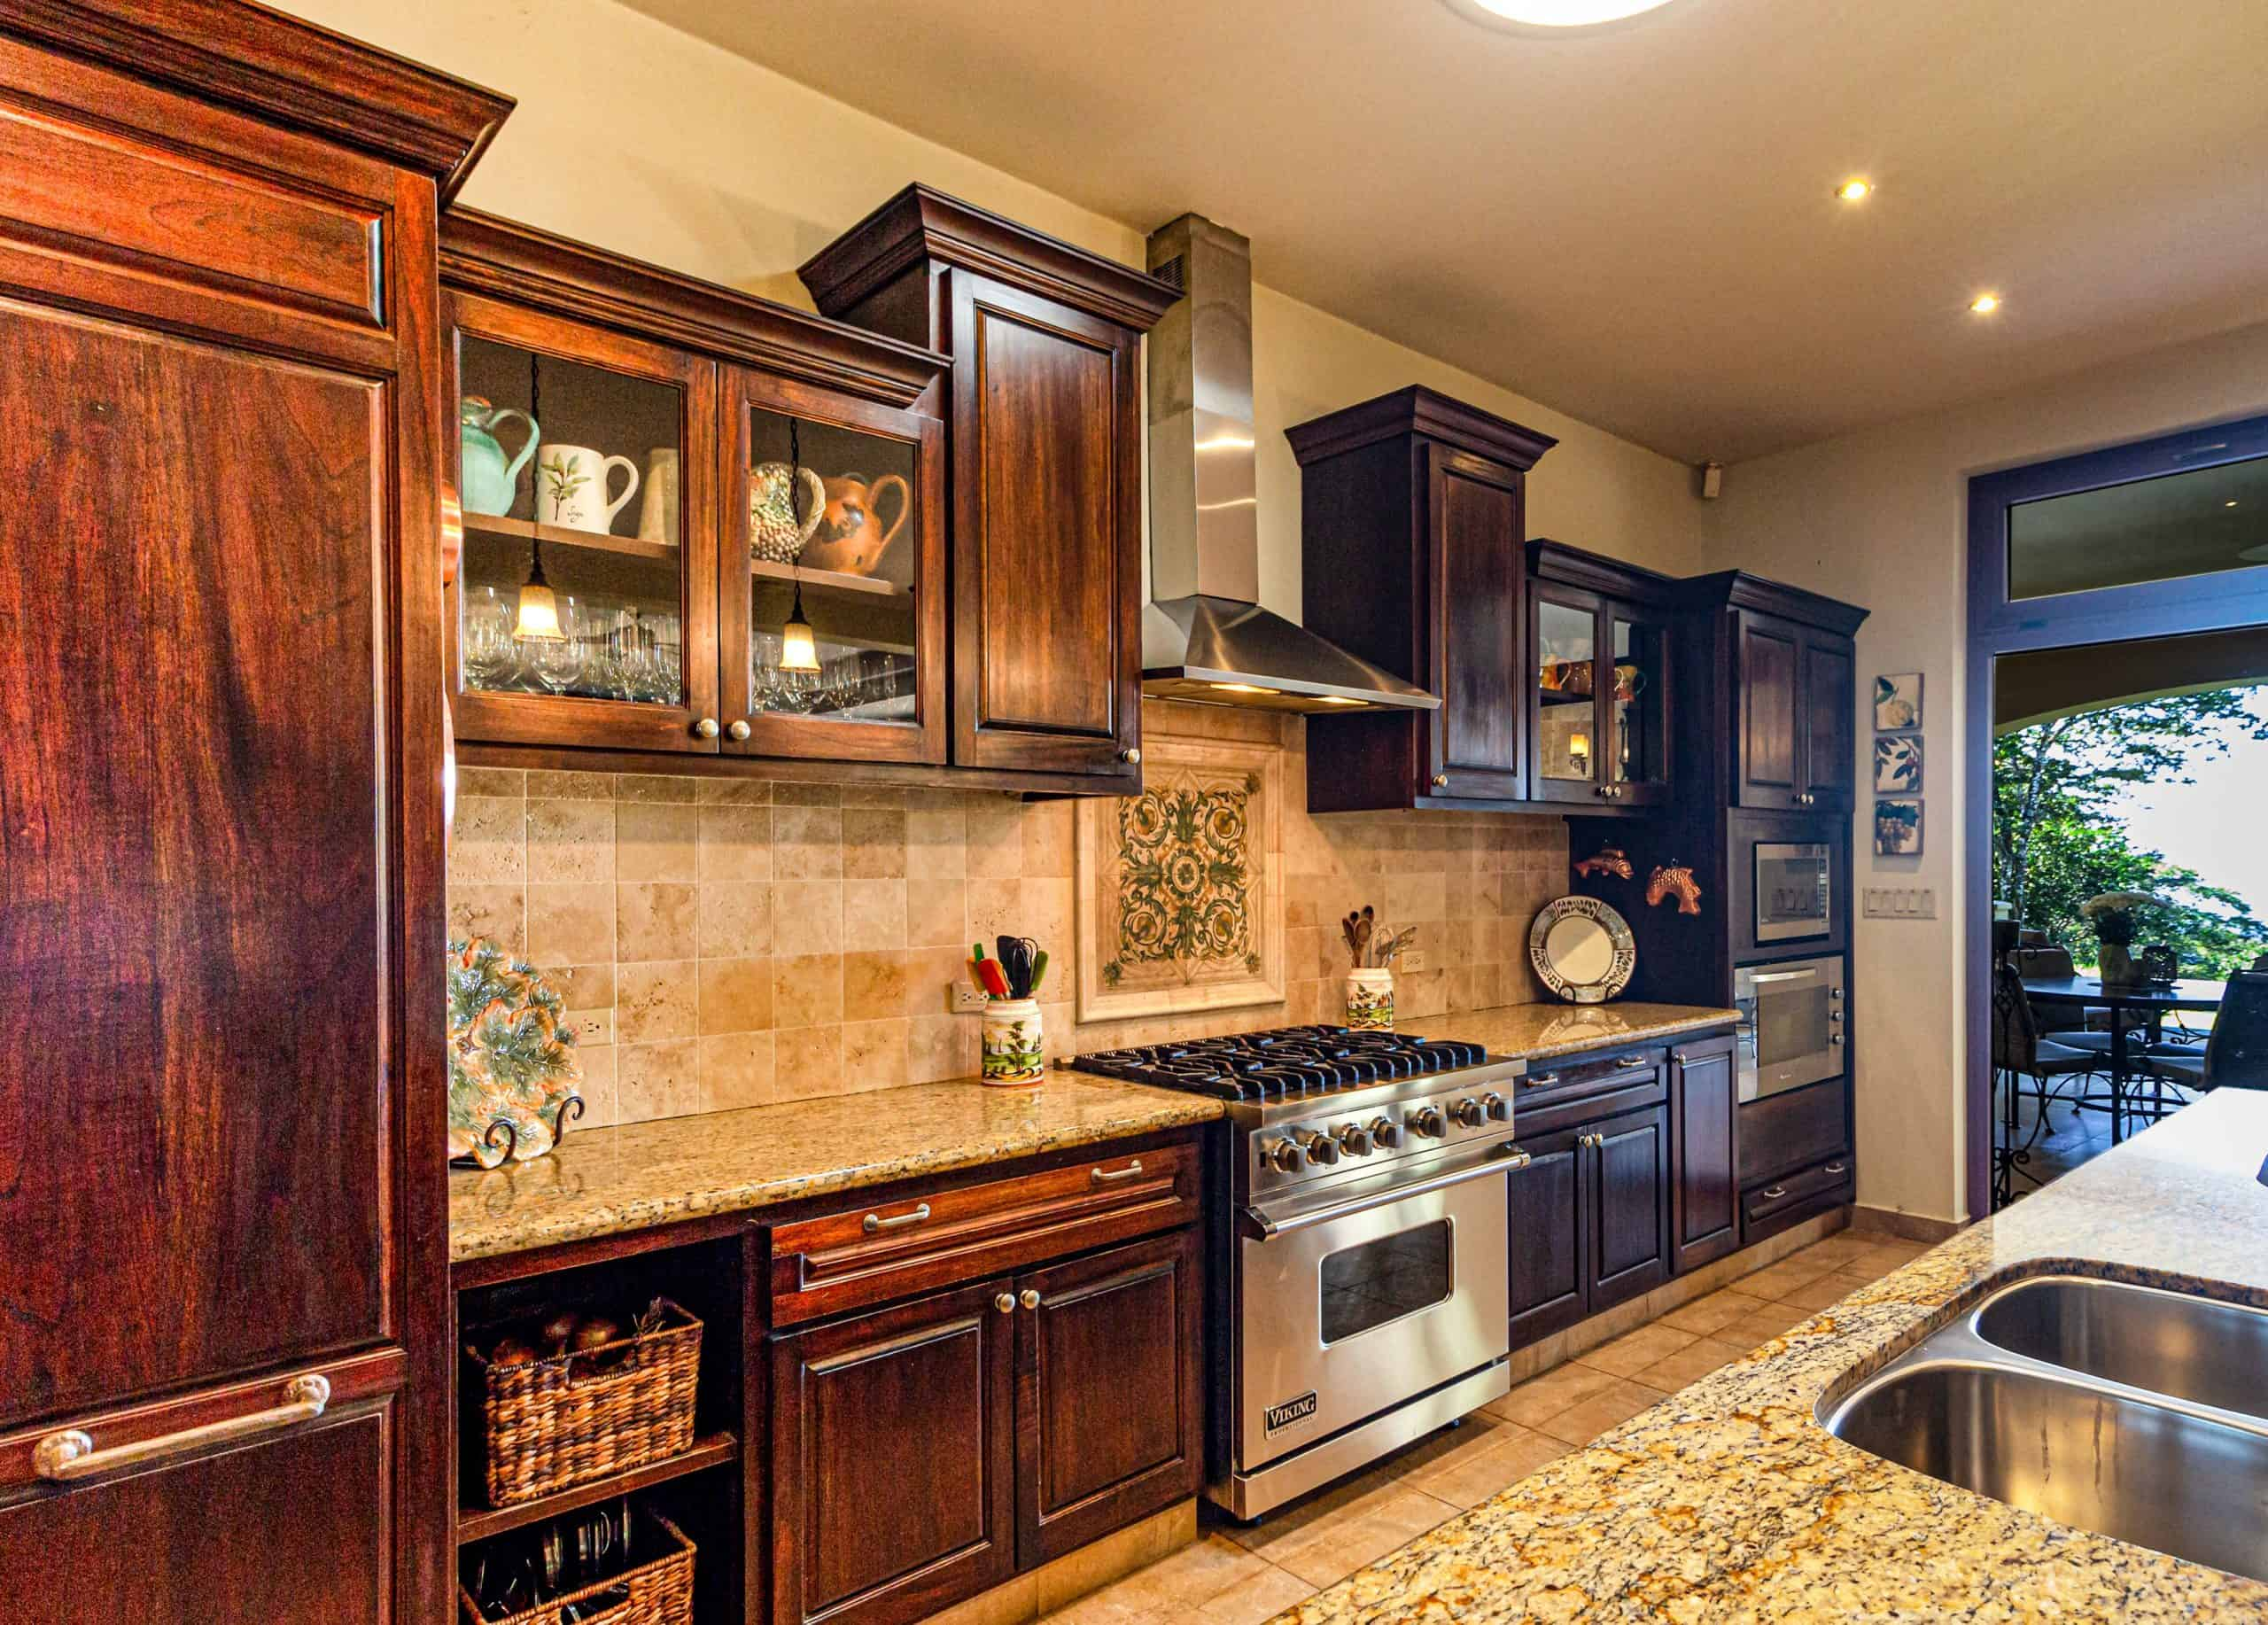 Tips on Organizing Your Kitchen Cabinets